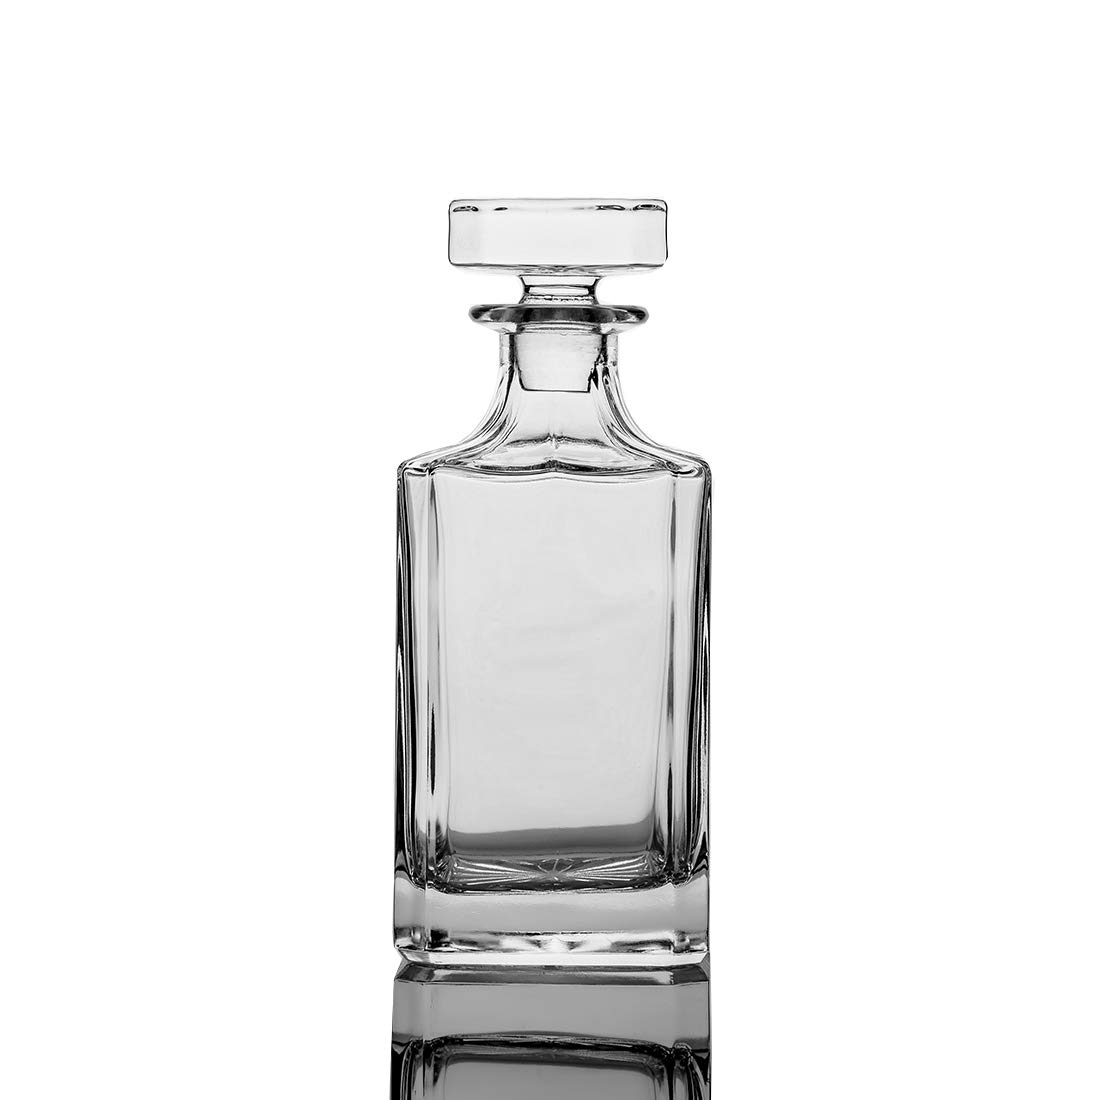 QUEEN&STONE Square 26oz Crystal Whiskey Decanter with Glass Stopper-Lead Free by QUEEN&STONE